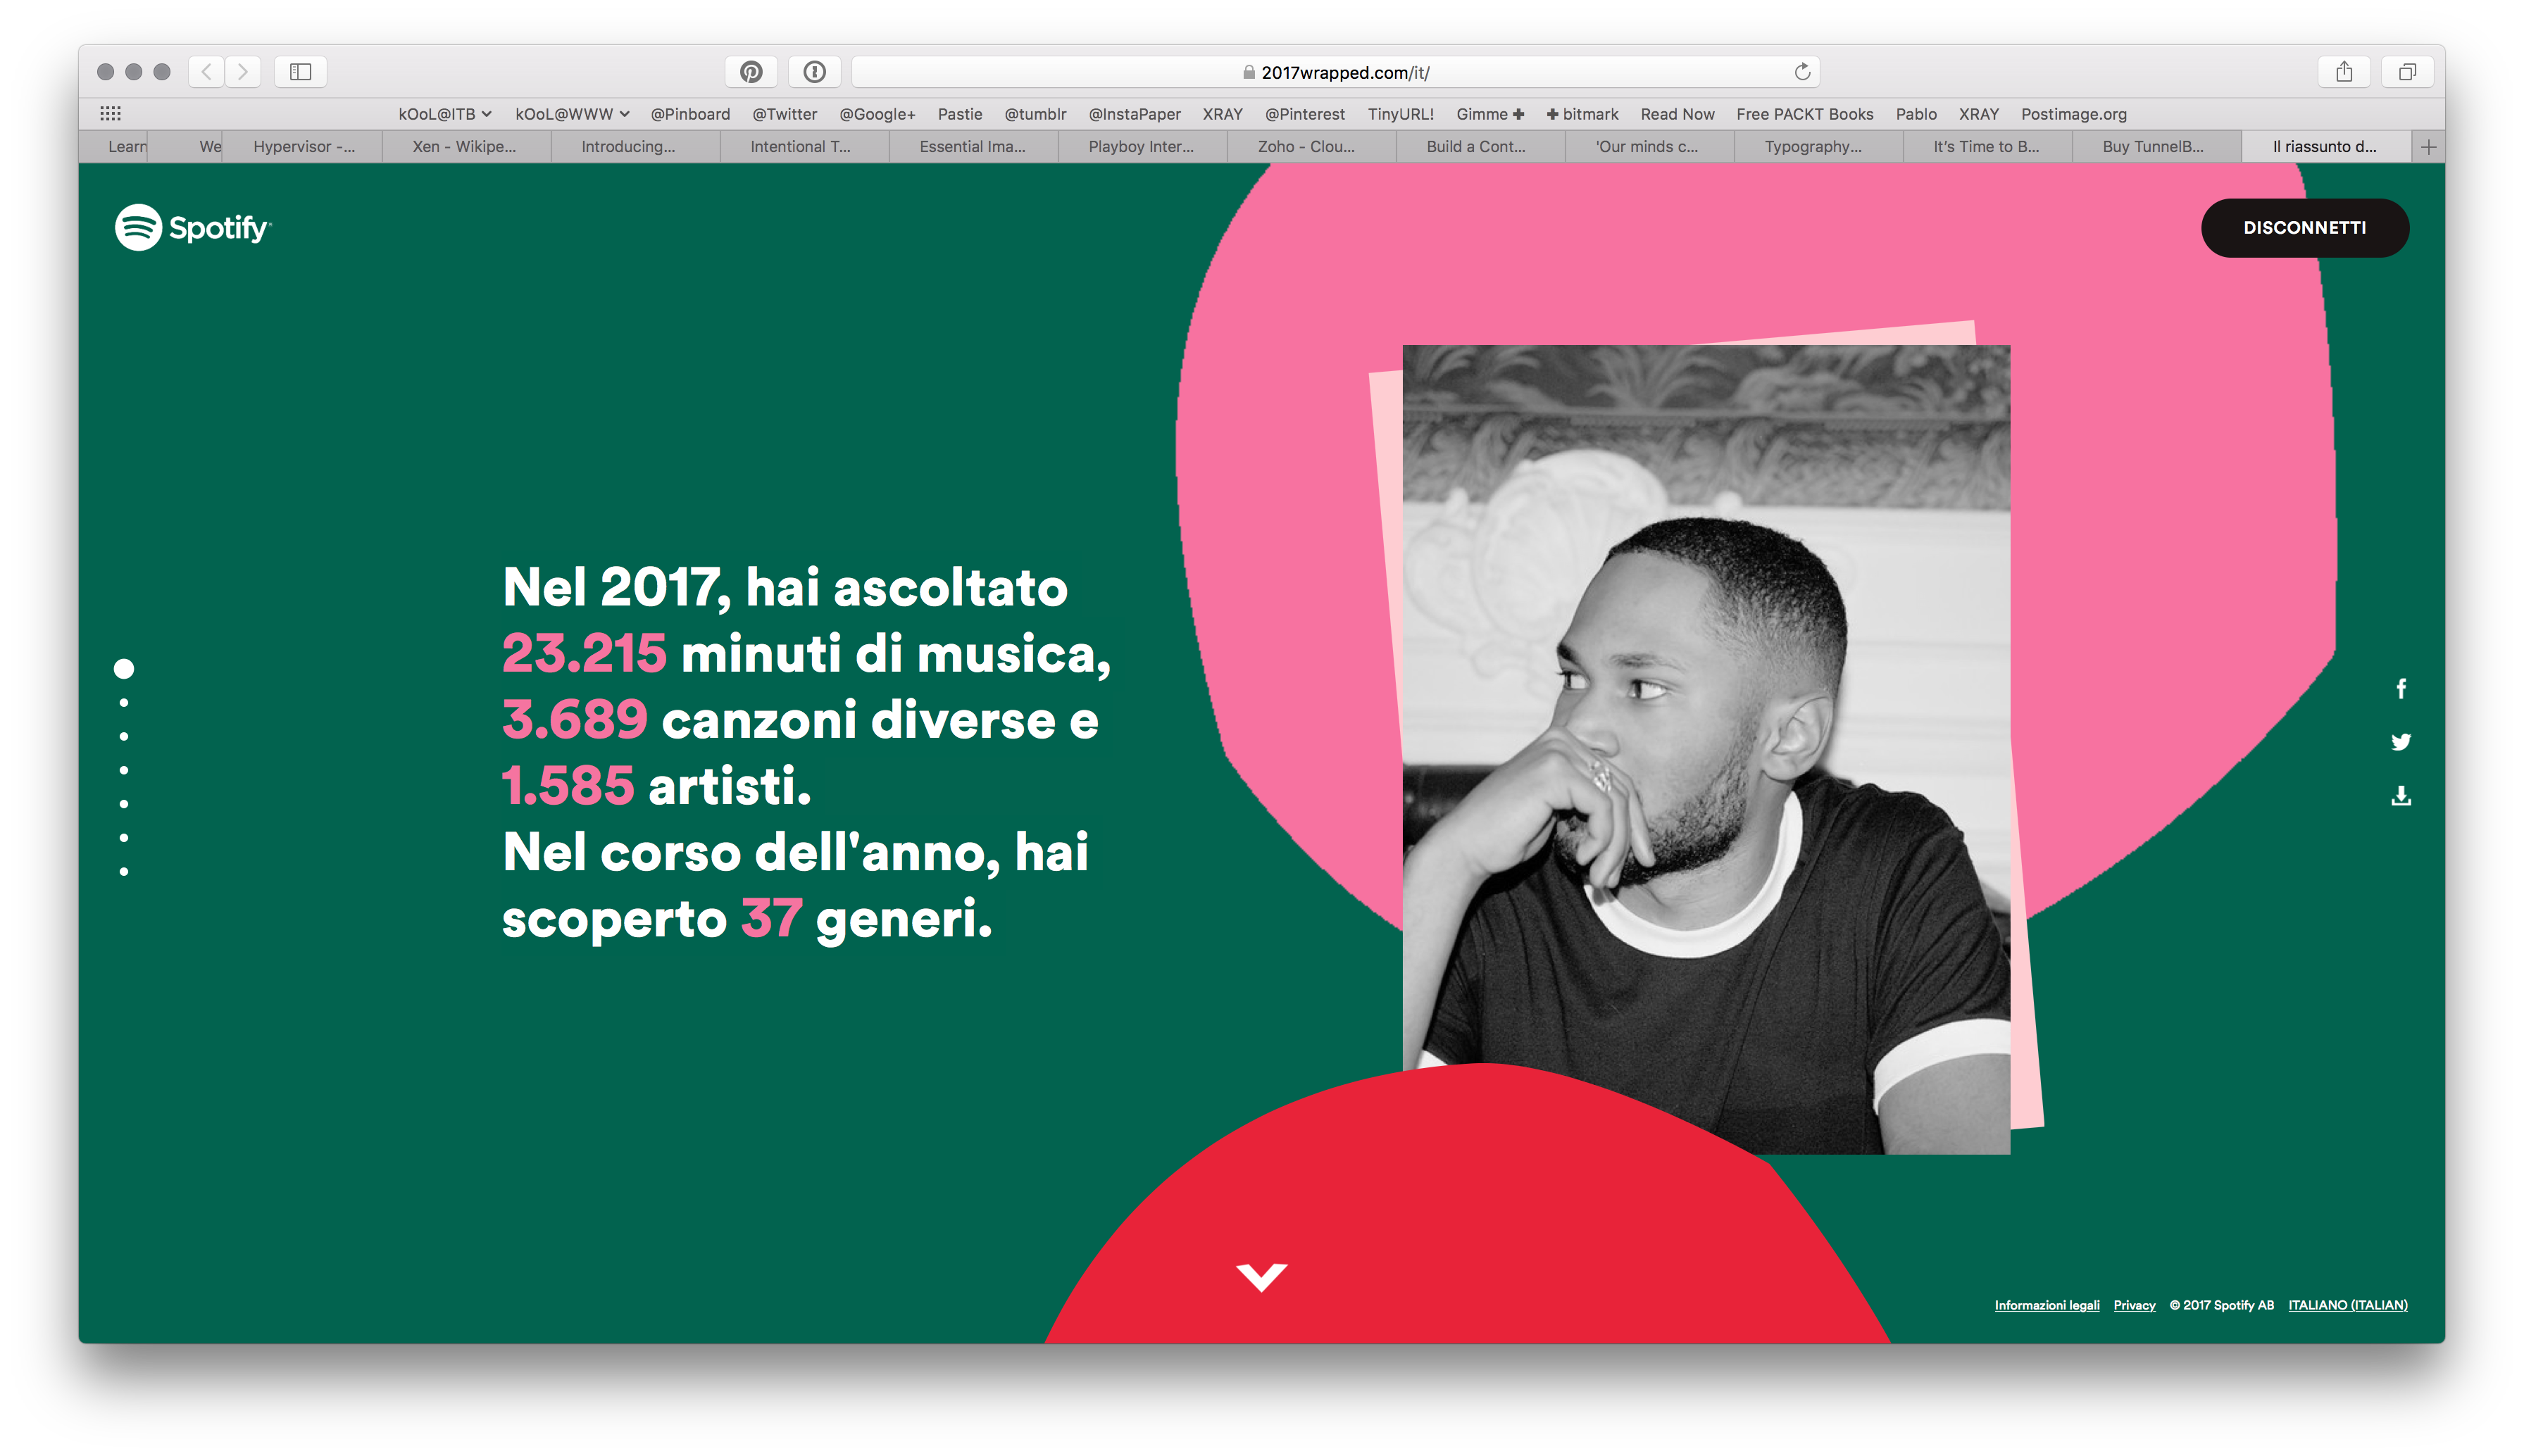 Spotify 2017 - details